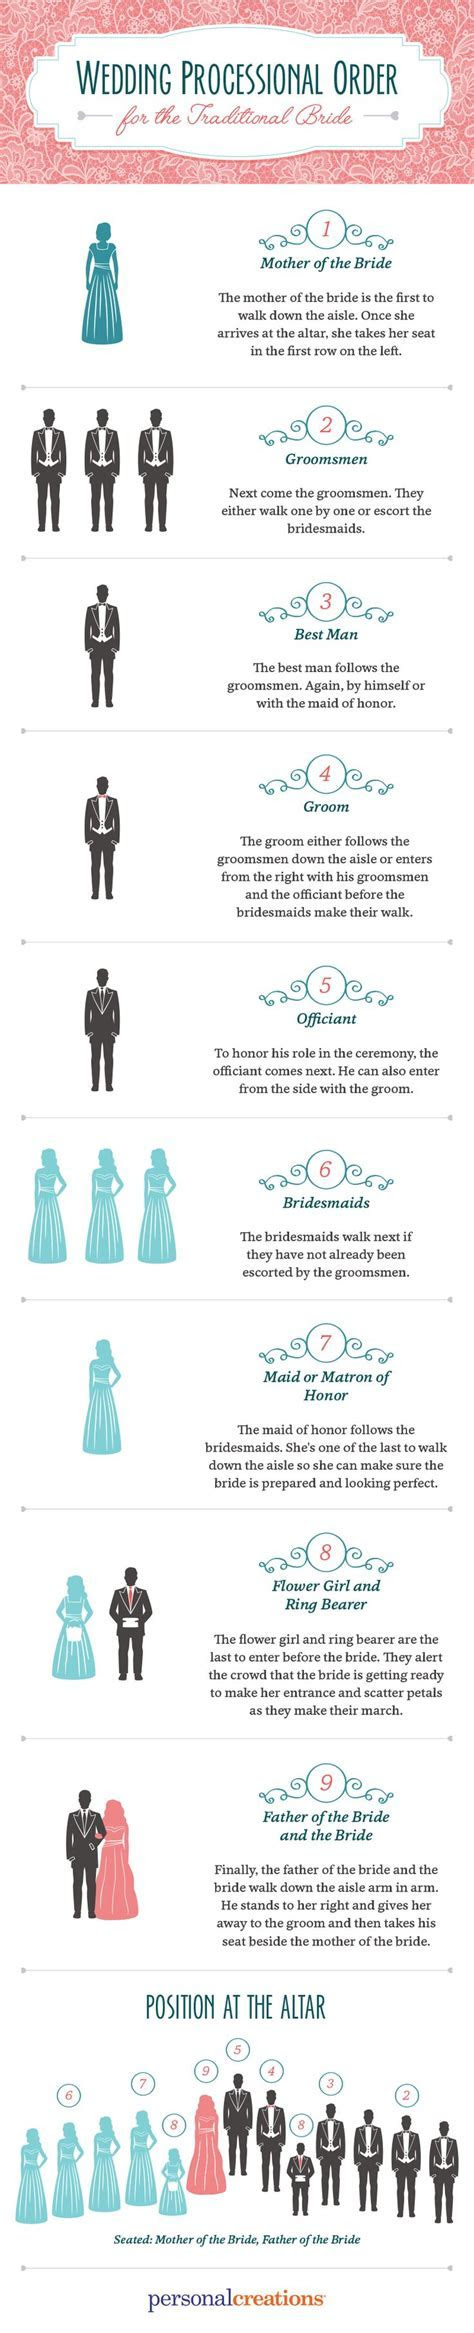 Wedding Processional Guide   'Wedding Ideas & Wedding Tips